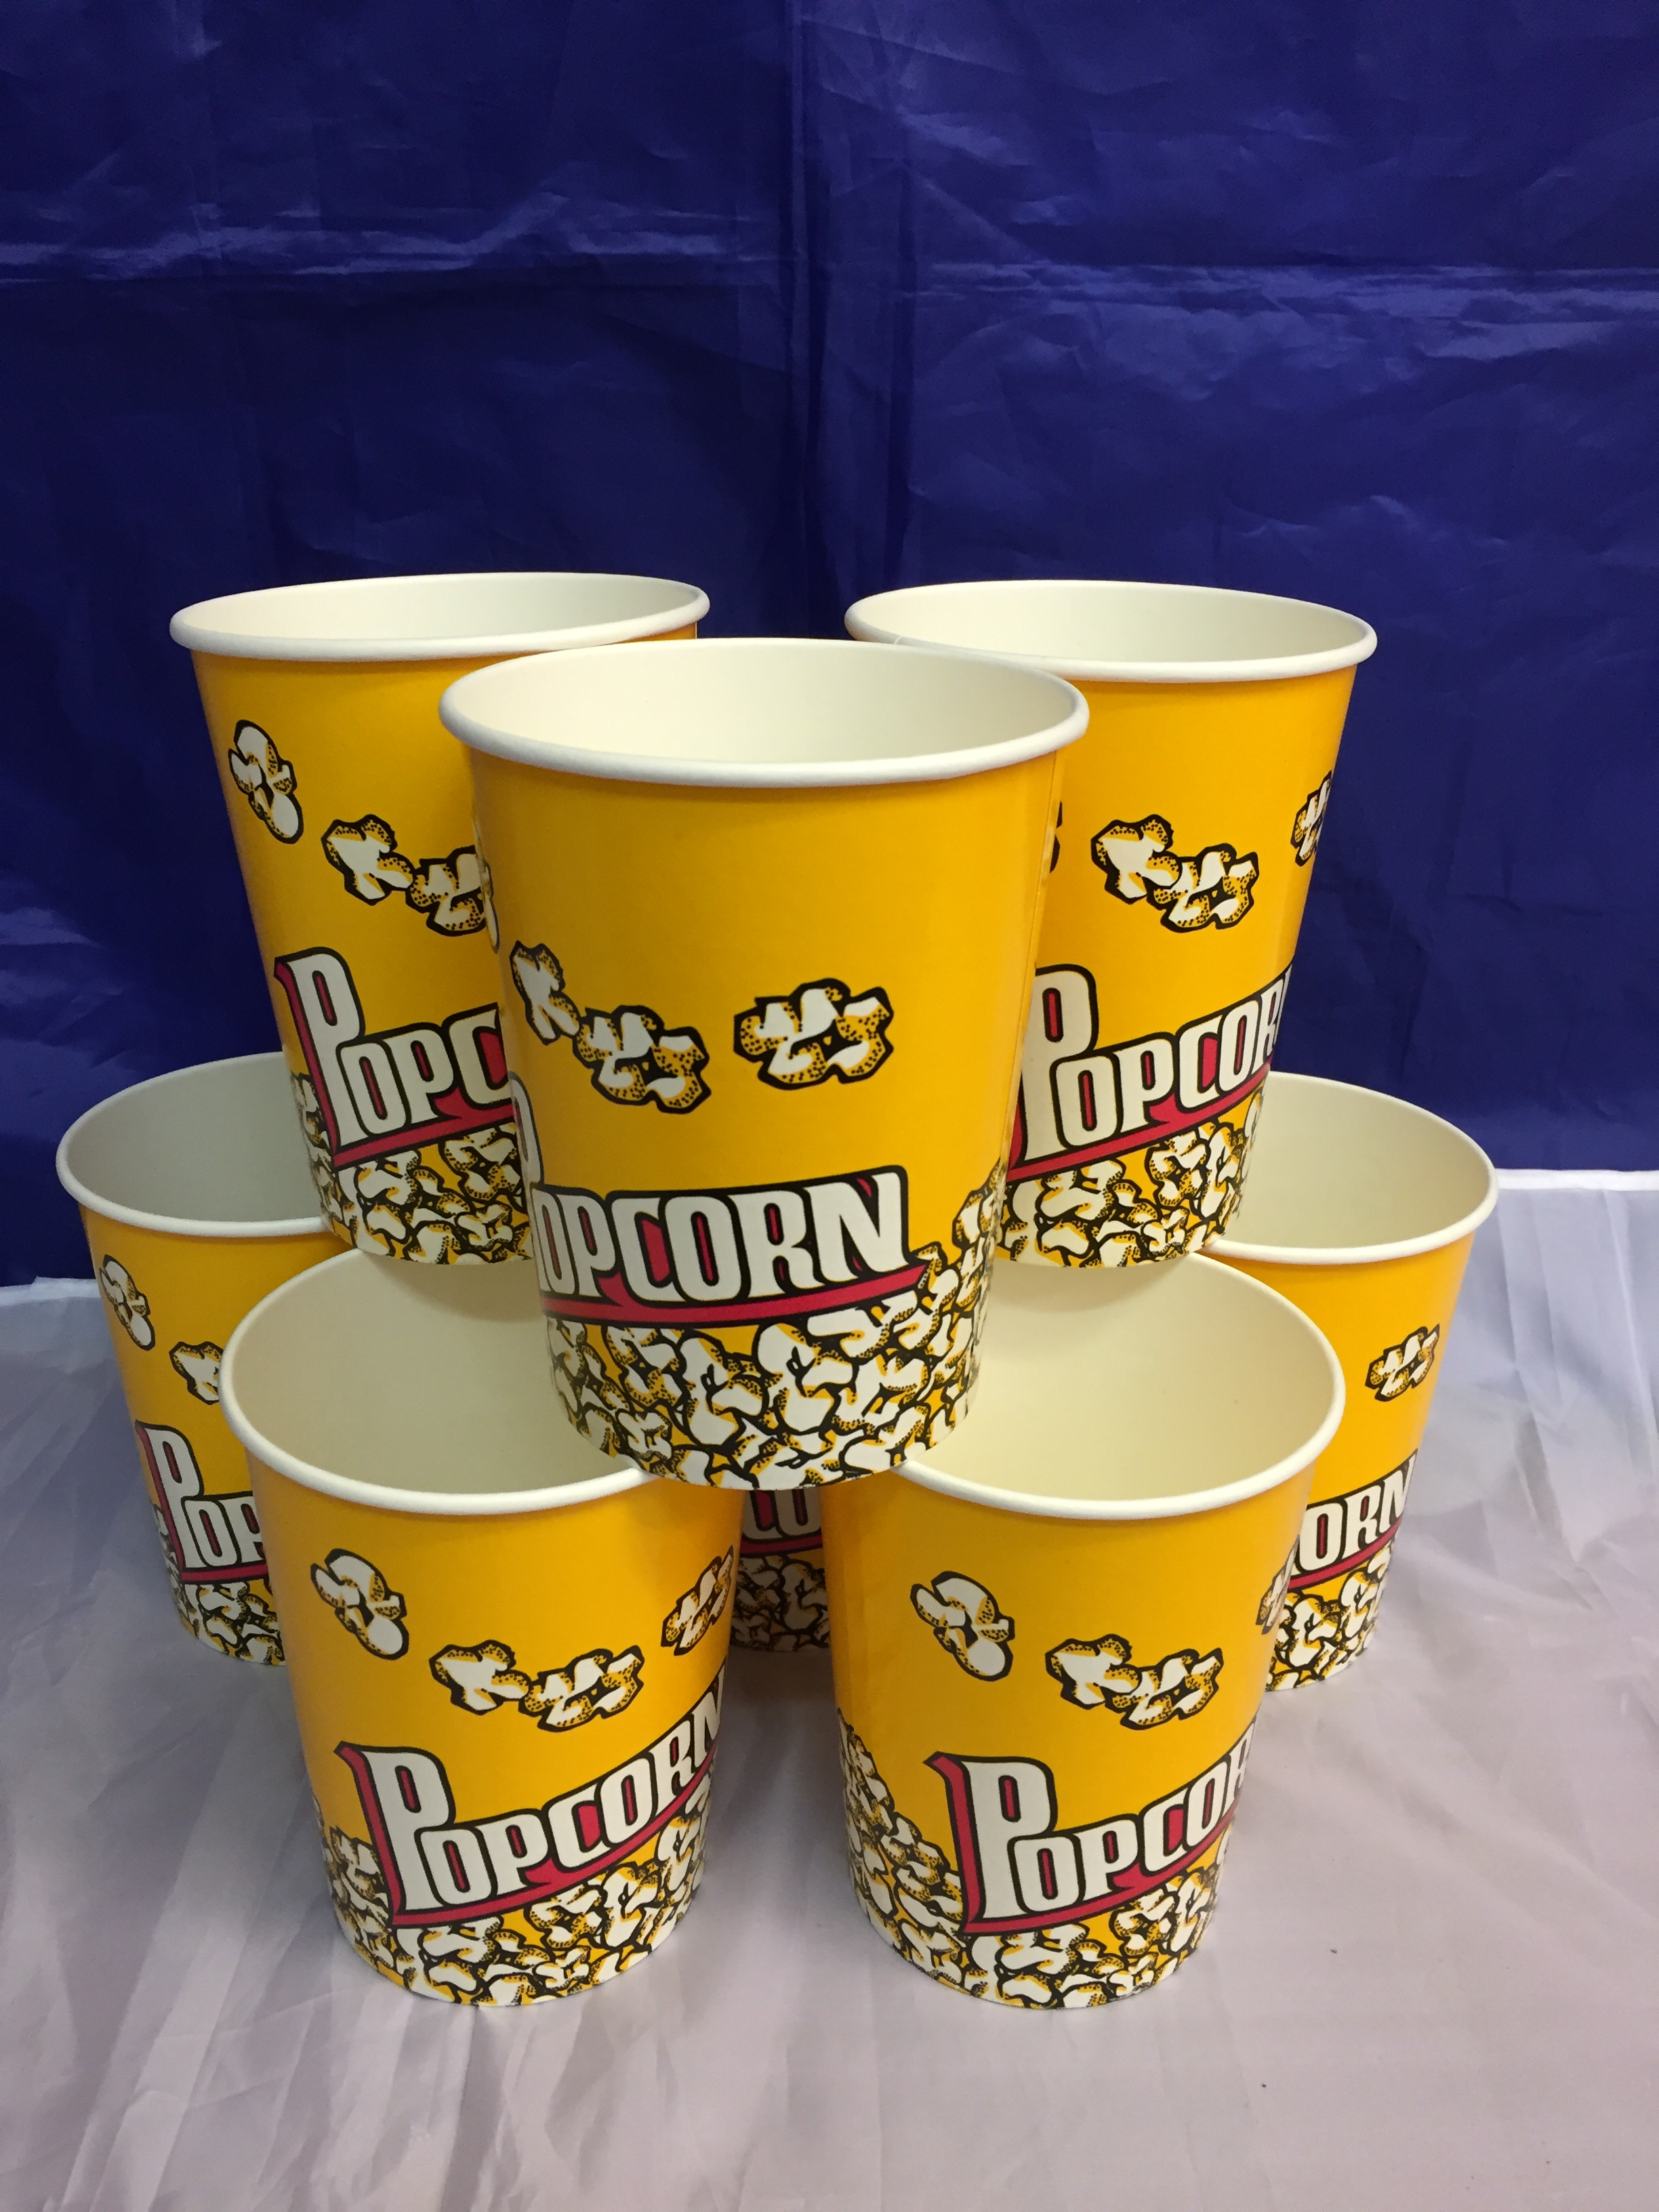 episodes pinterest theater exclusive niftywarehouse popcorn tubs episode pin tub wars oz star com promotional and